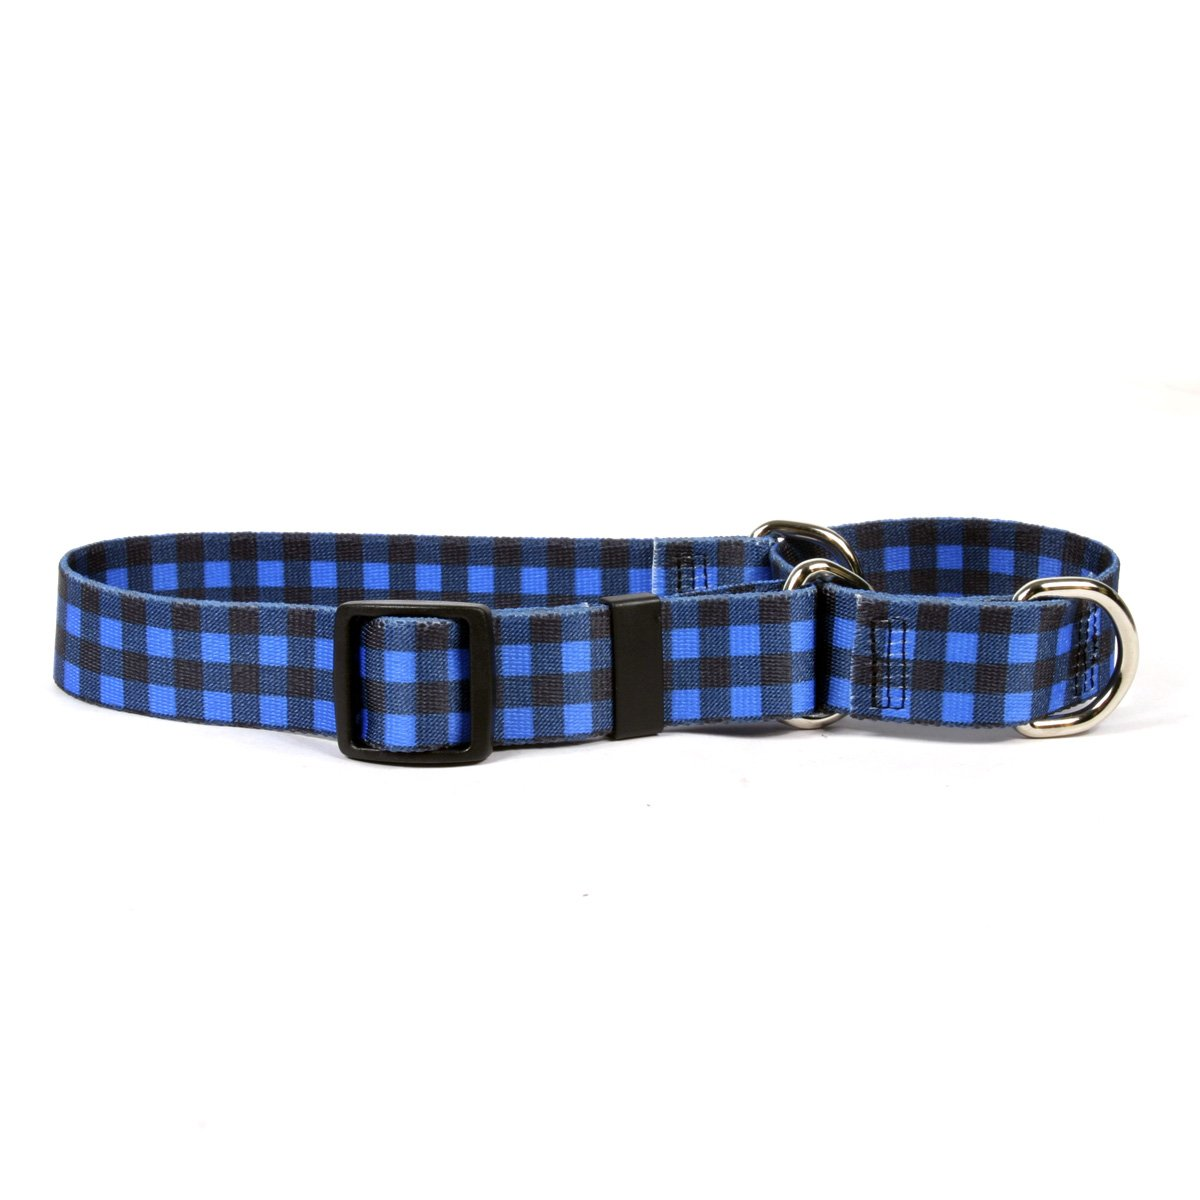 Yellow Dog Design Buffalo Plaid Blue Martingale Dog Collar 1'' Wide And Fits Neck 18 To 26'', Large